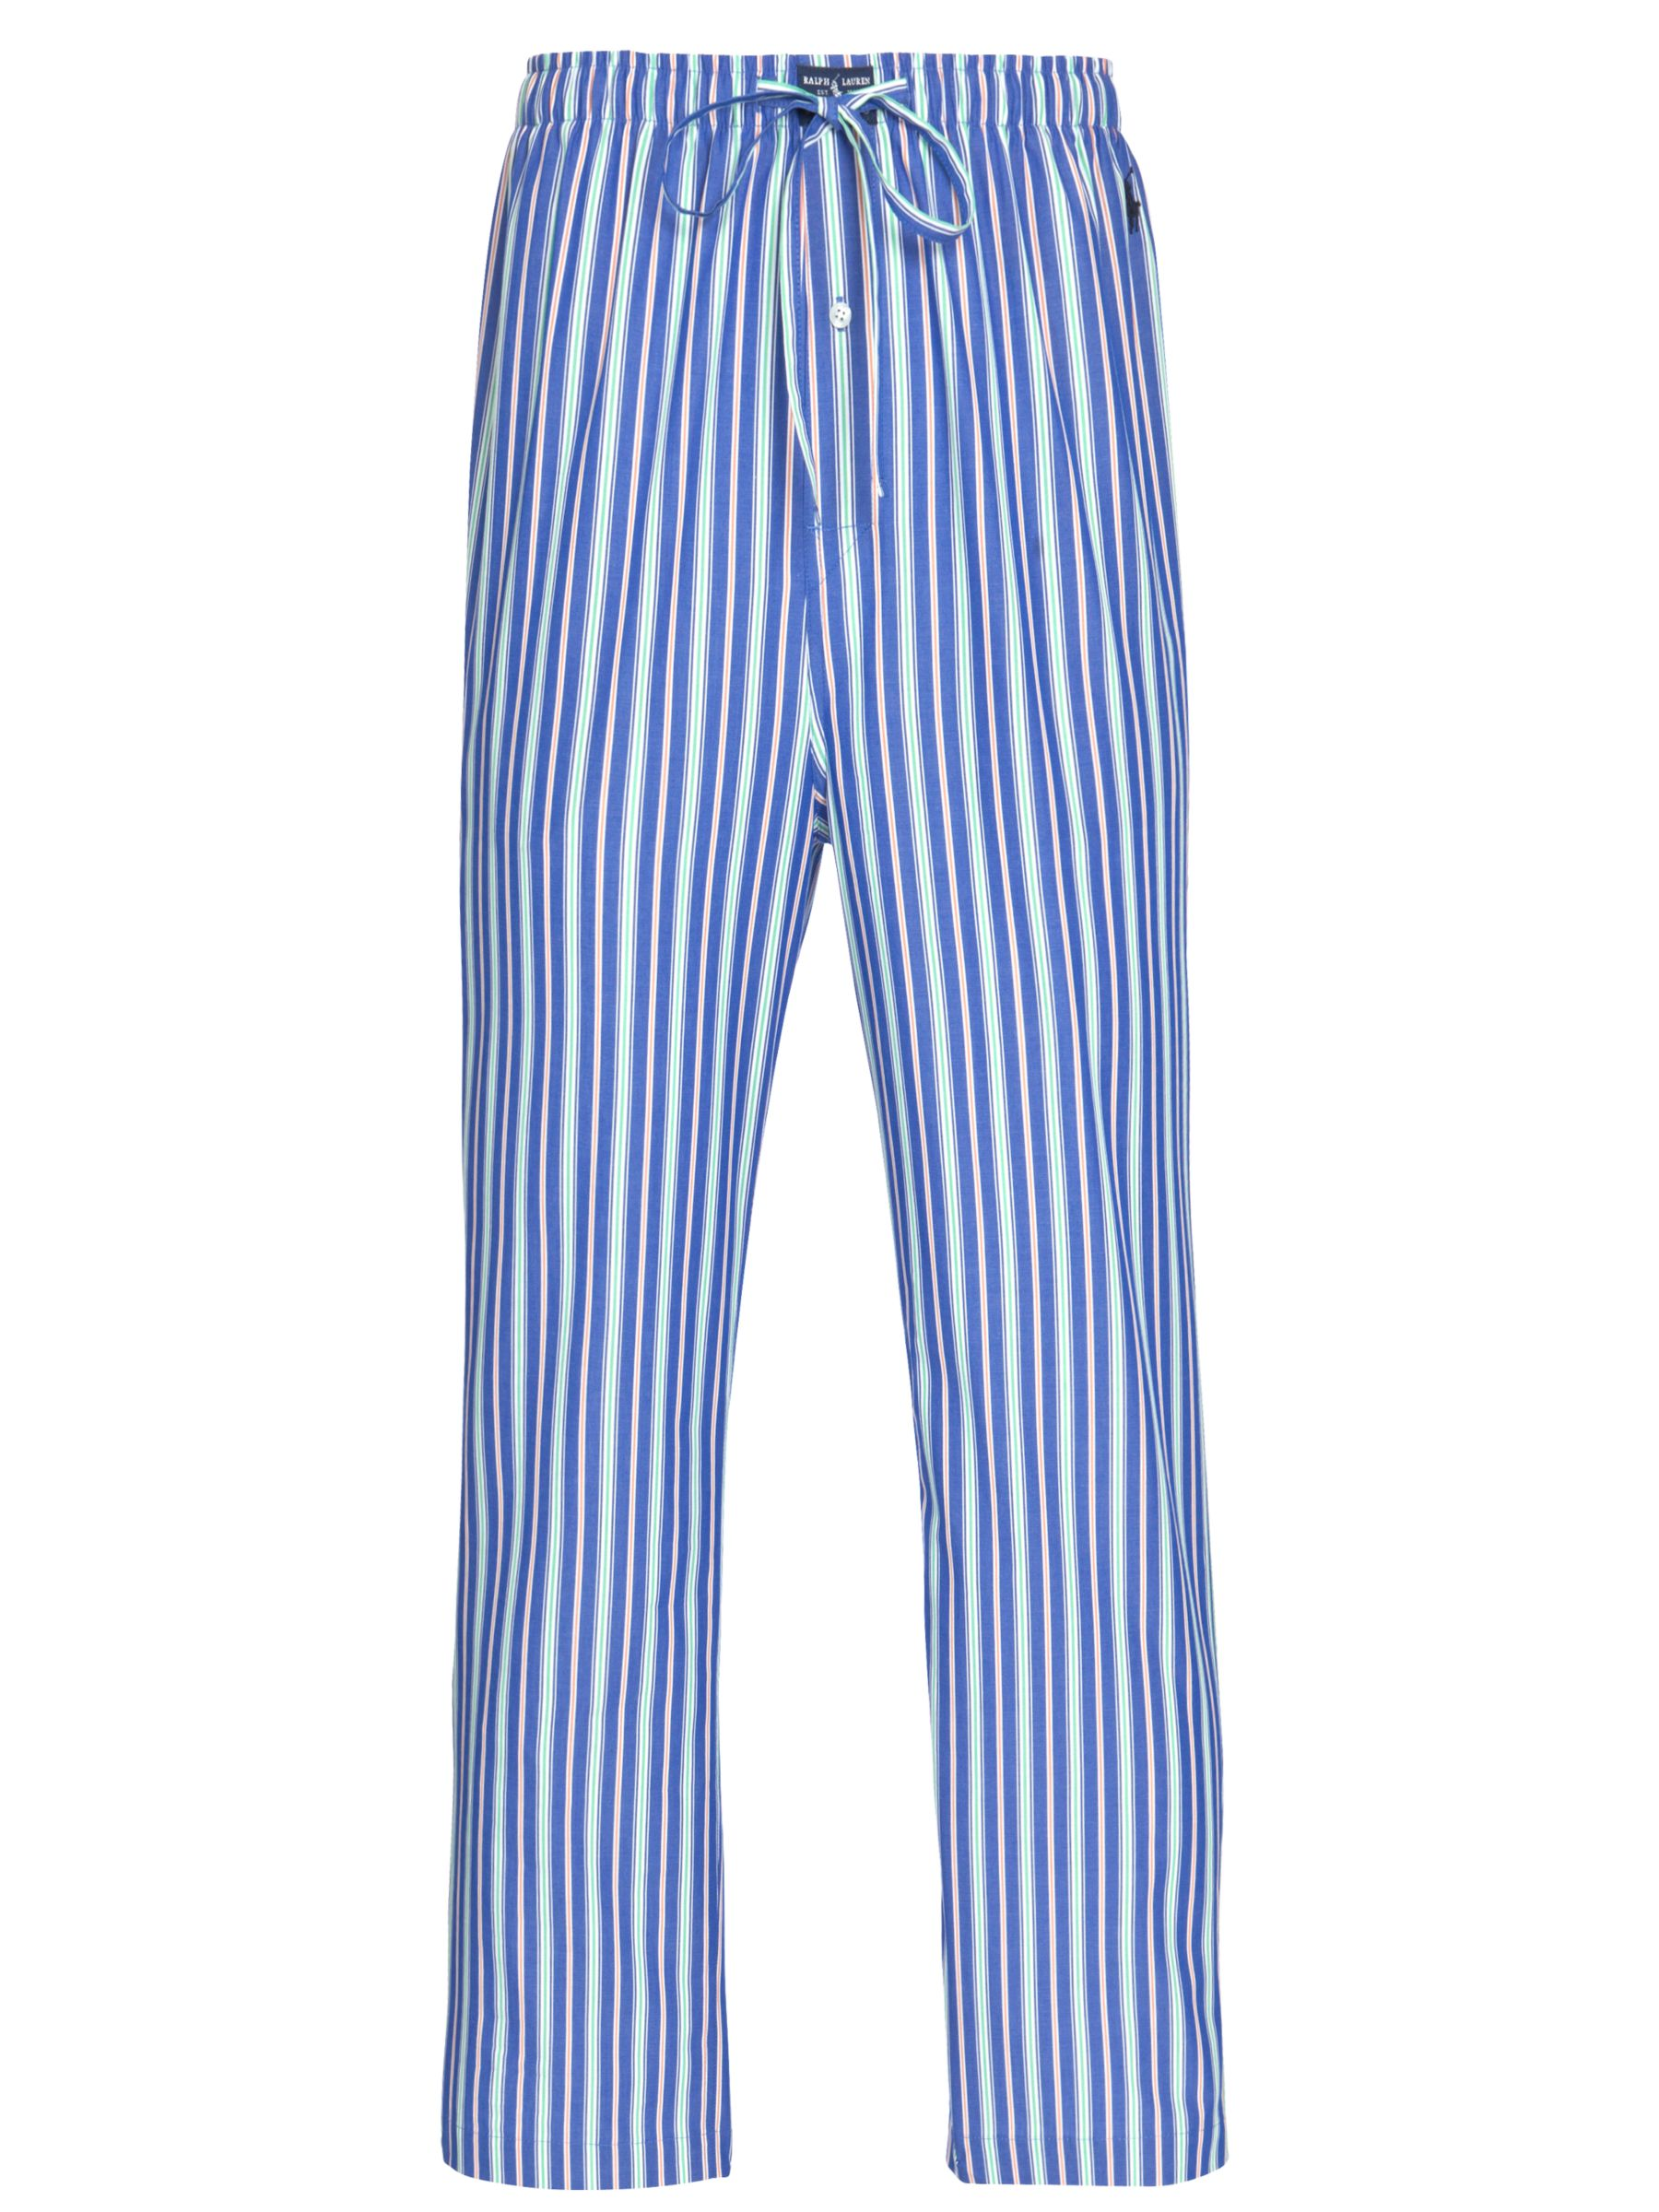 Polo Ralph Lauren Stripe Lounge Pants, Blue/Multi